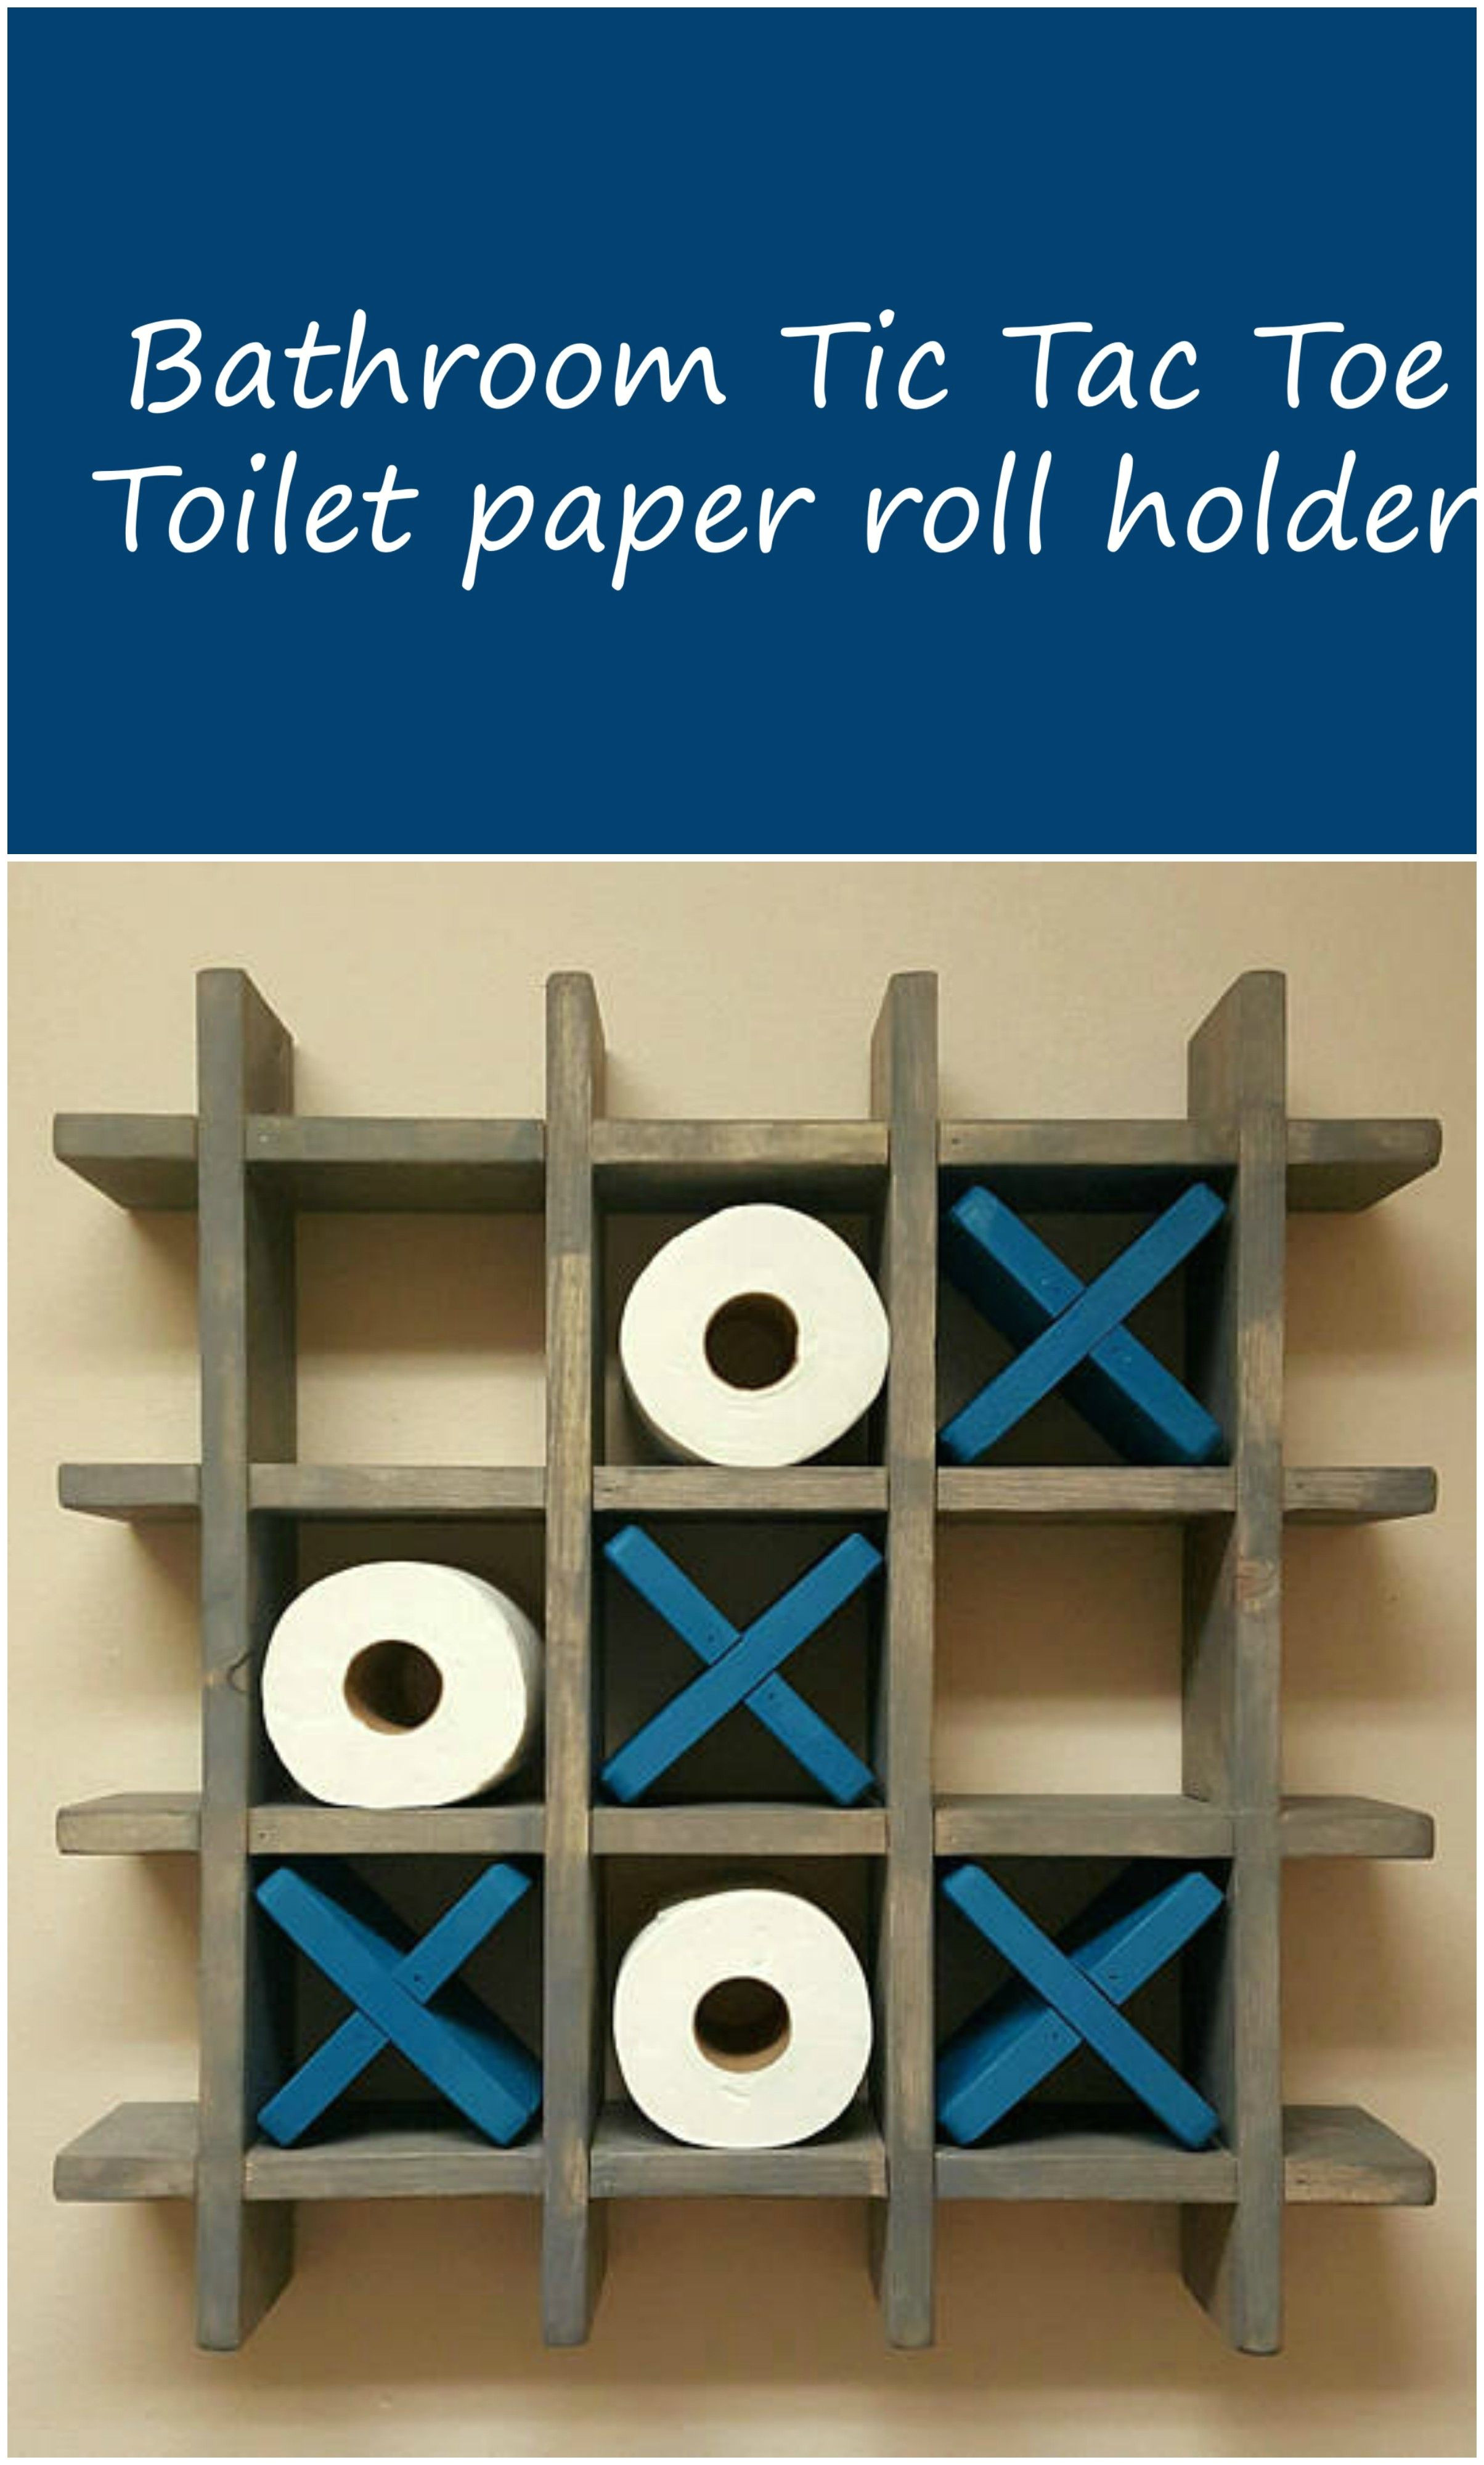 Tic Tac toe toilet Roll Holder Bathroom Tic Tac toe Game Made to order toilet Paper Roll